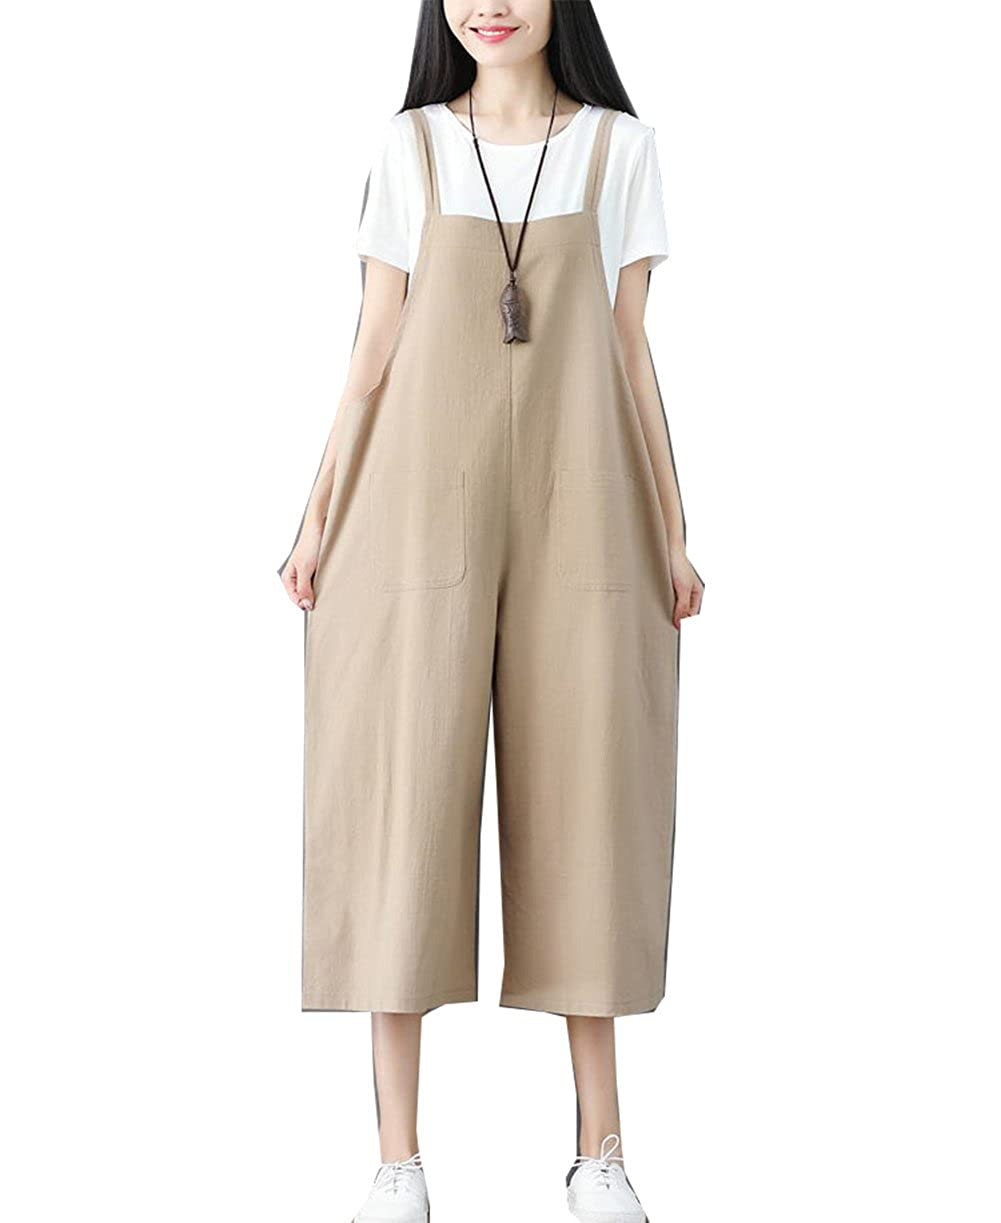 Siehin Women's Casual Loose Fit Cropped Wide Leg Bib Overall Linen Pants Jumpsuit